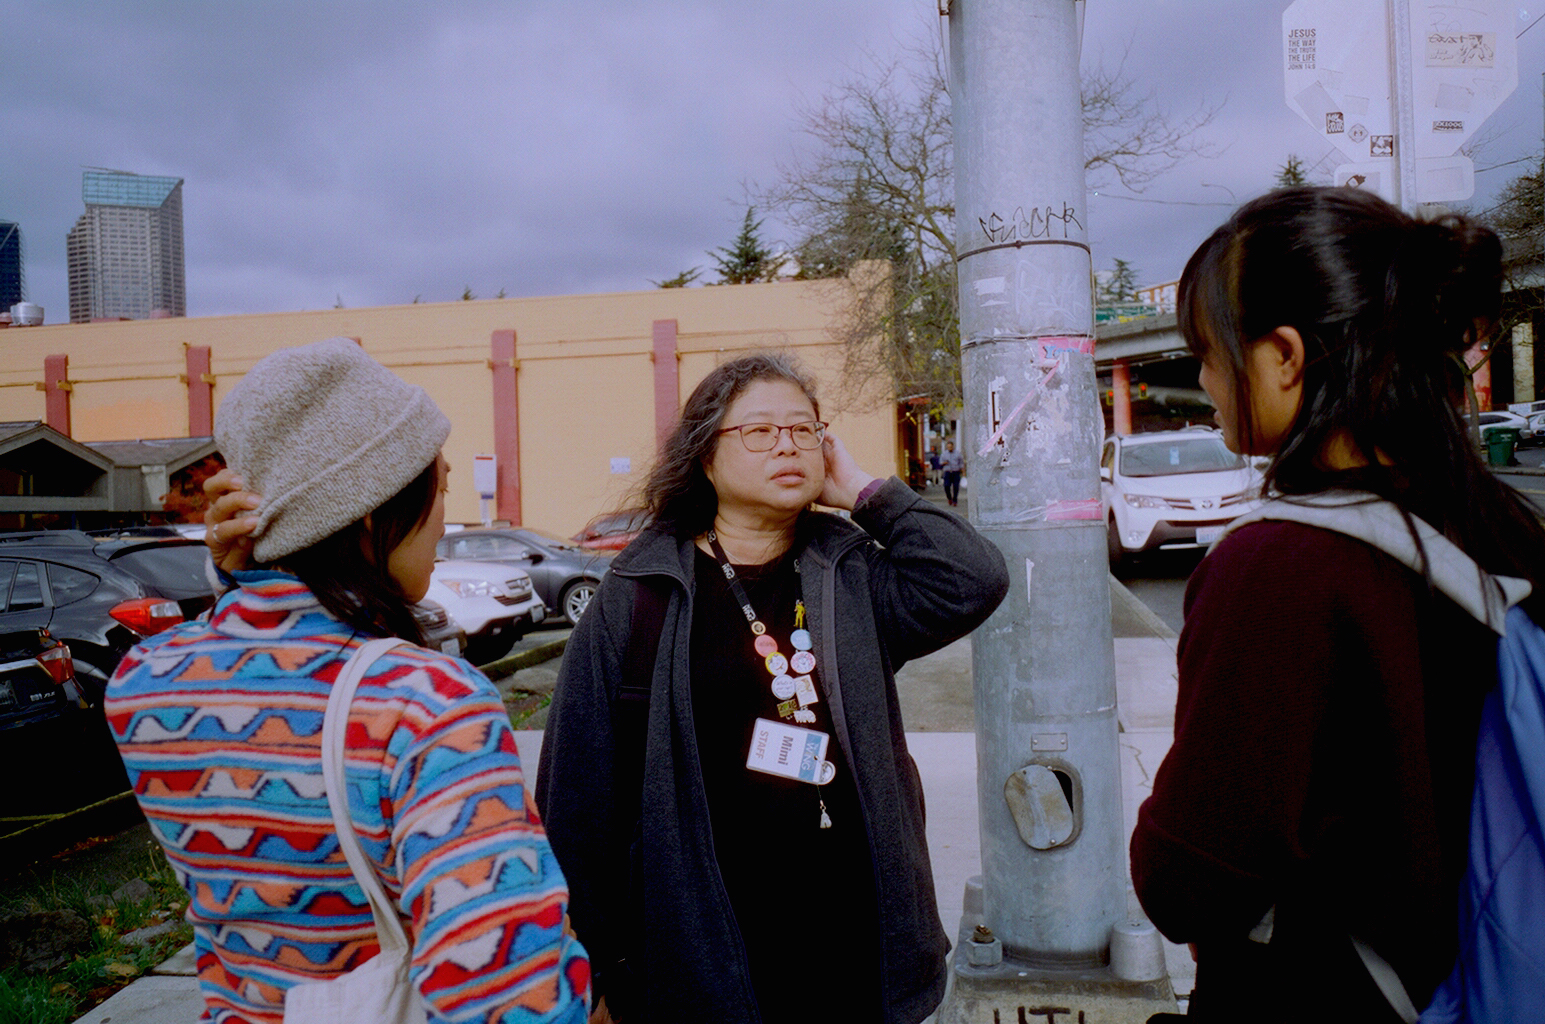 The next morning, we met Mimi, our Chinatown tour guide. We walked your streets and traced your footsteps